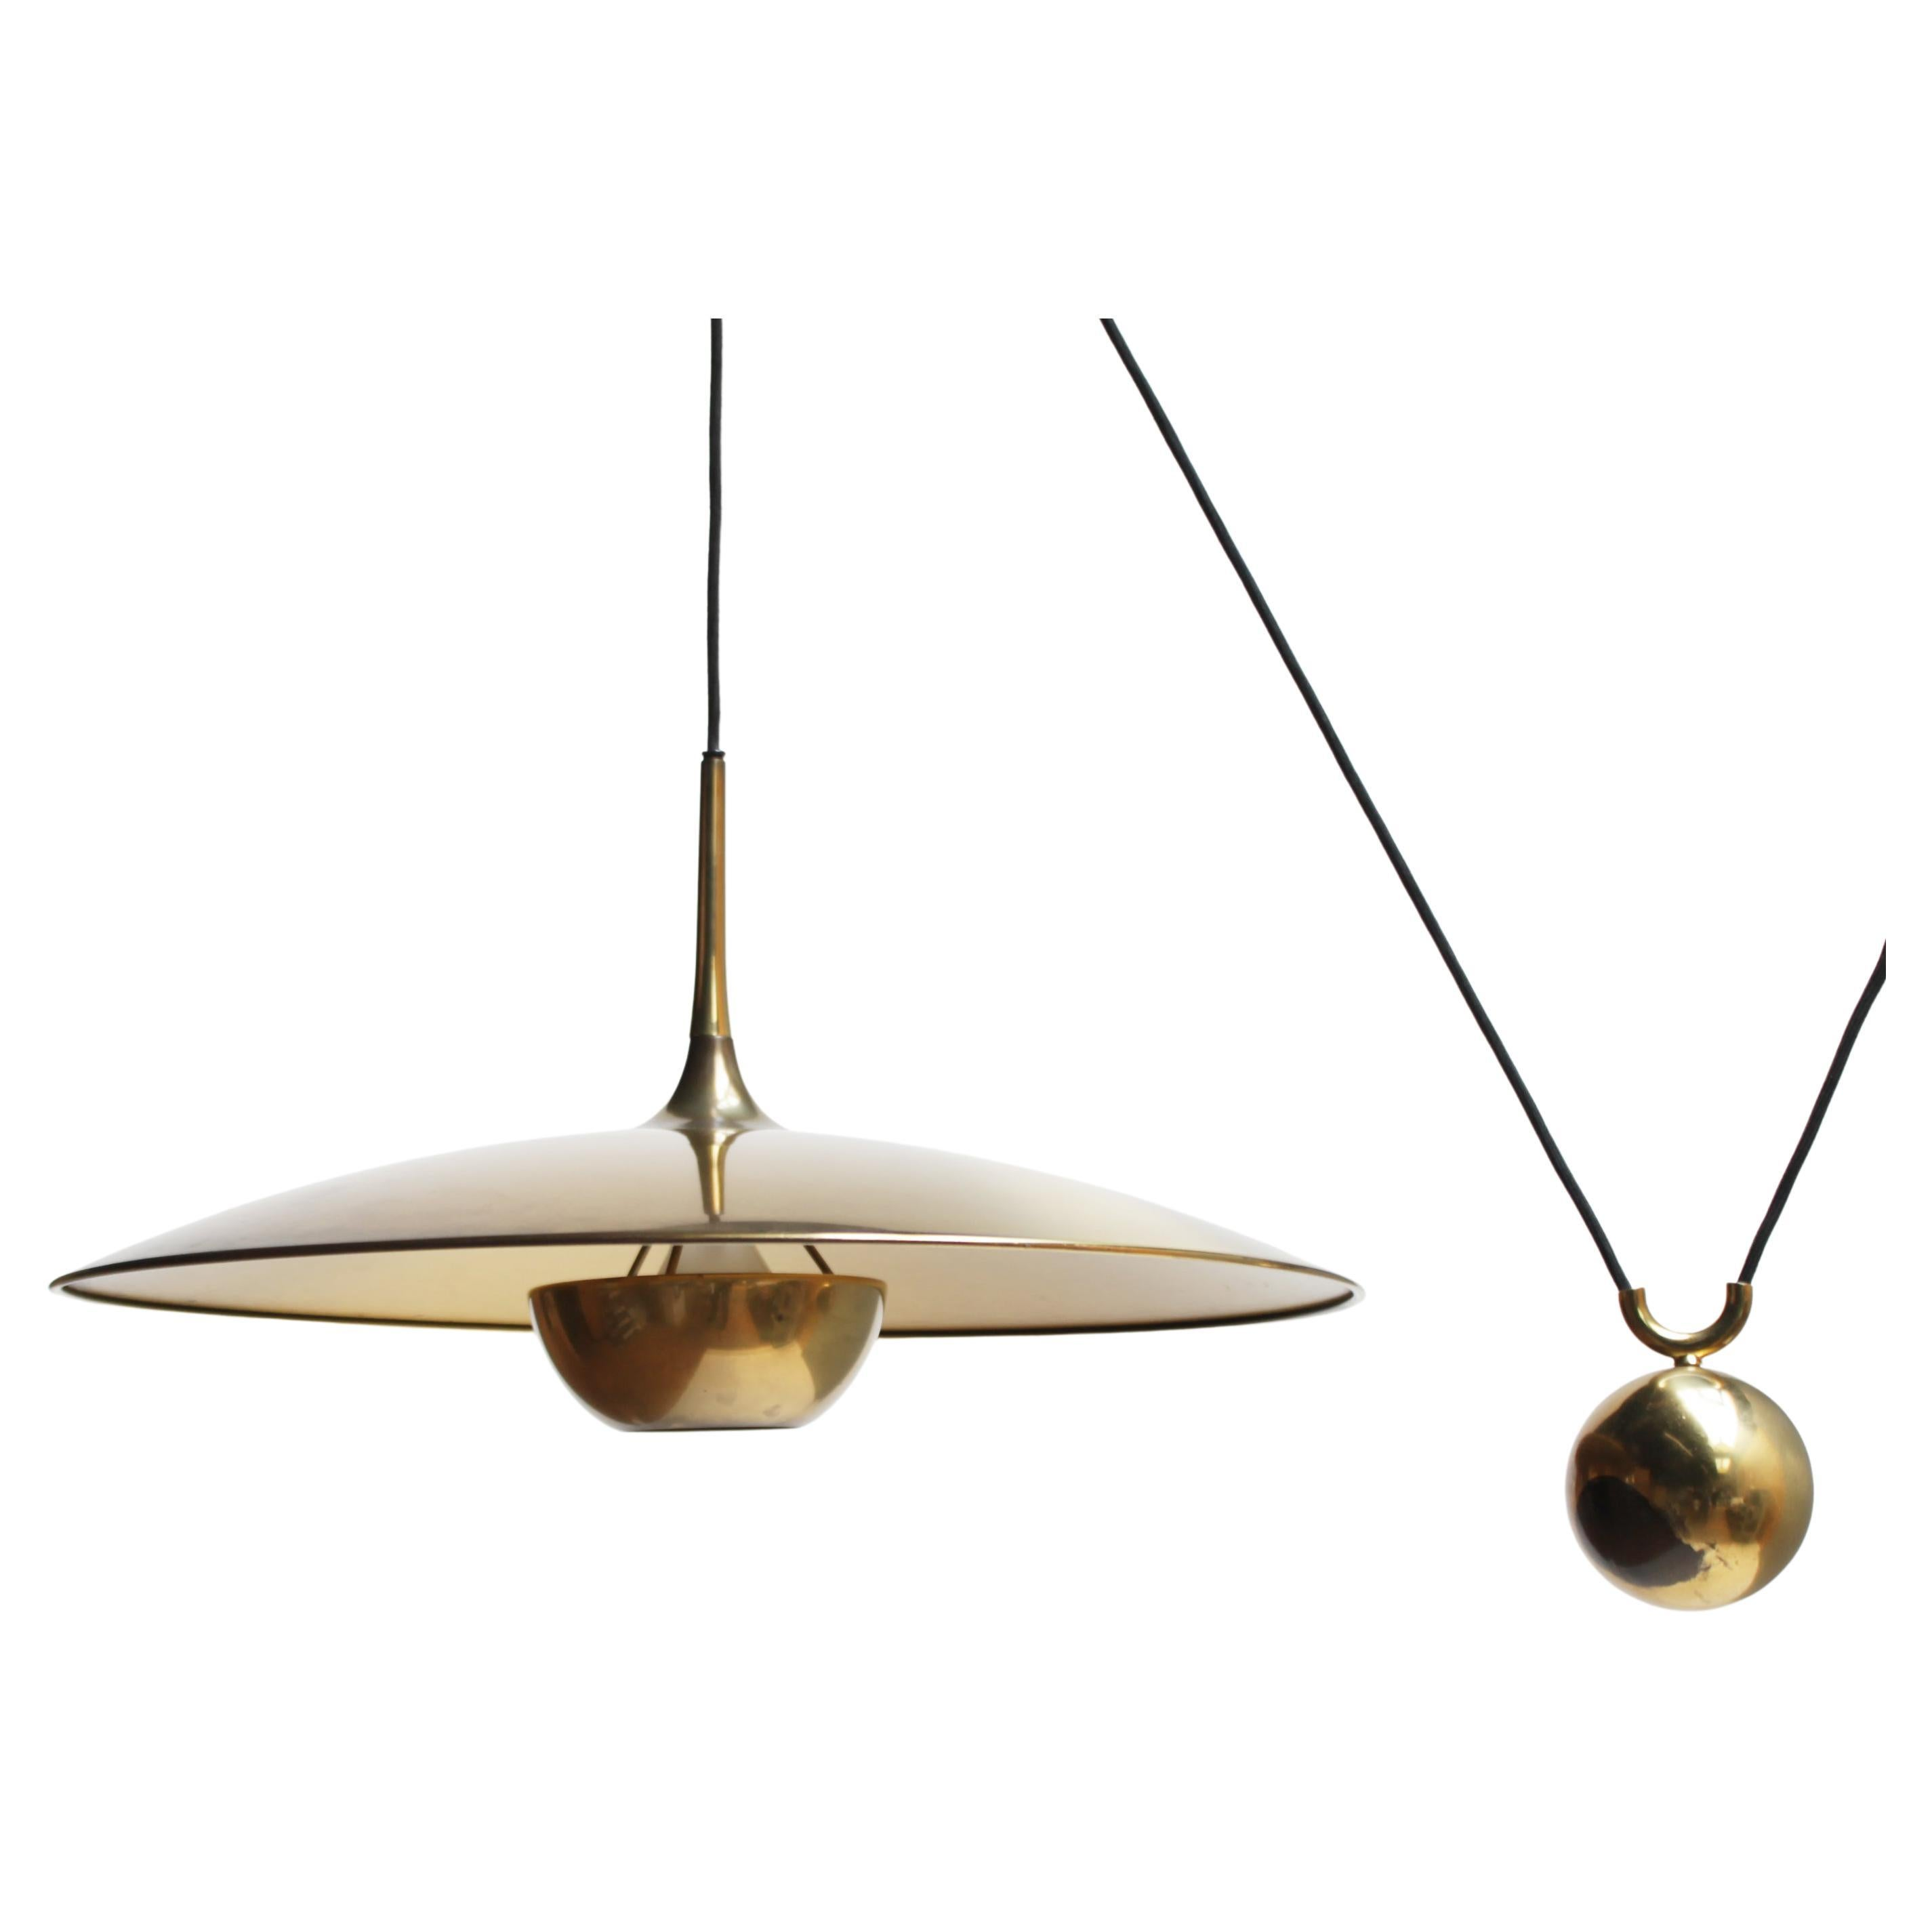 Vintage Brass Counterweight Pendant 'Onos 55' by Florian Schulz, Germany